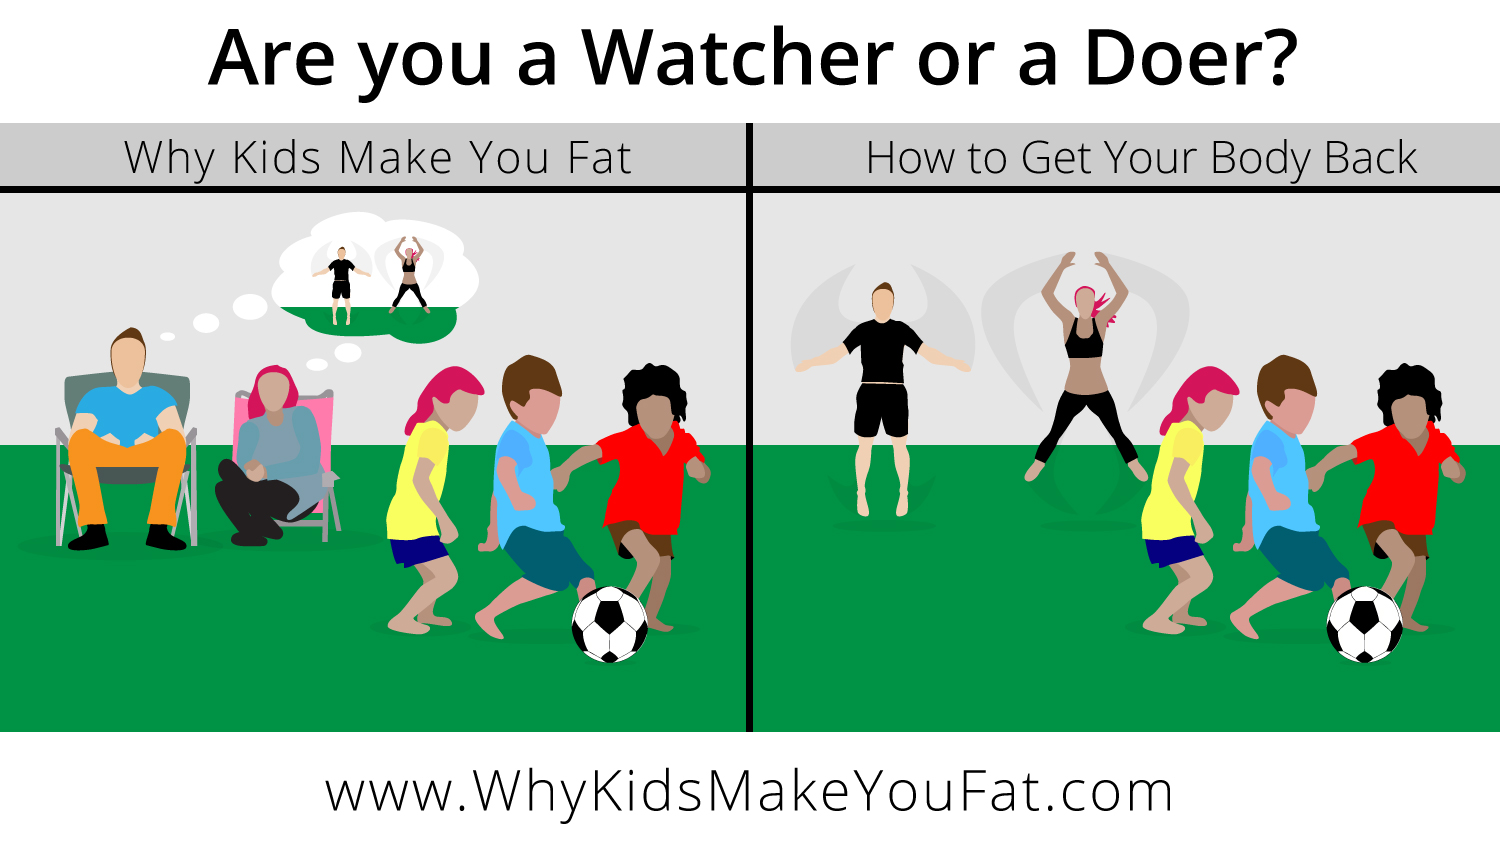 Are you a watcher or a doer?